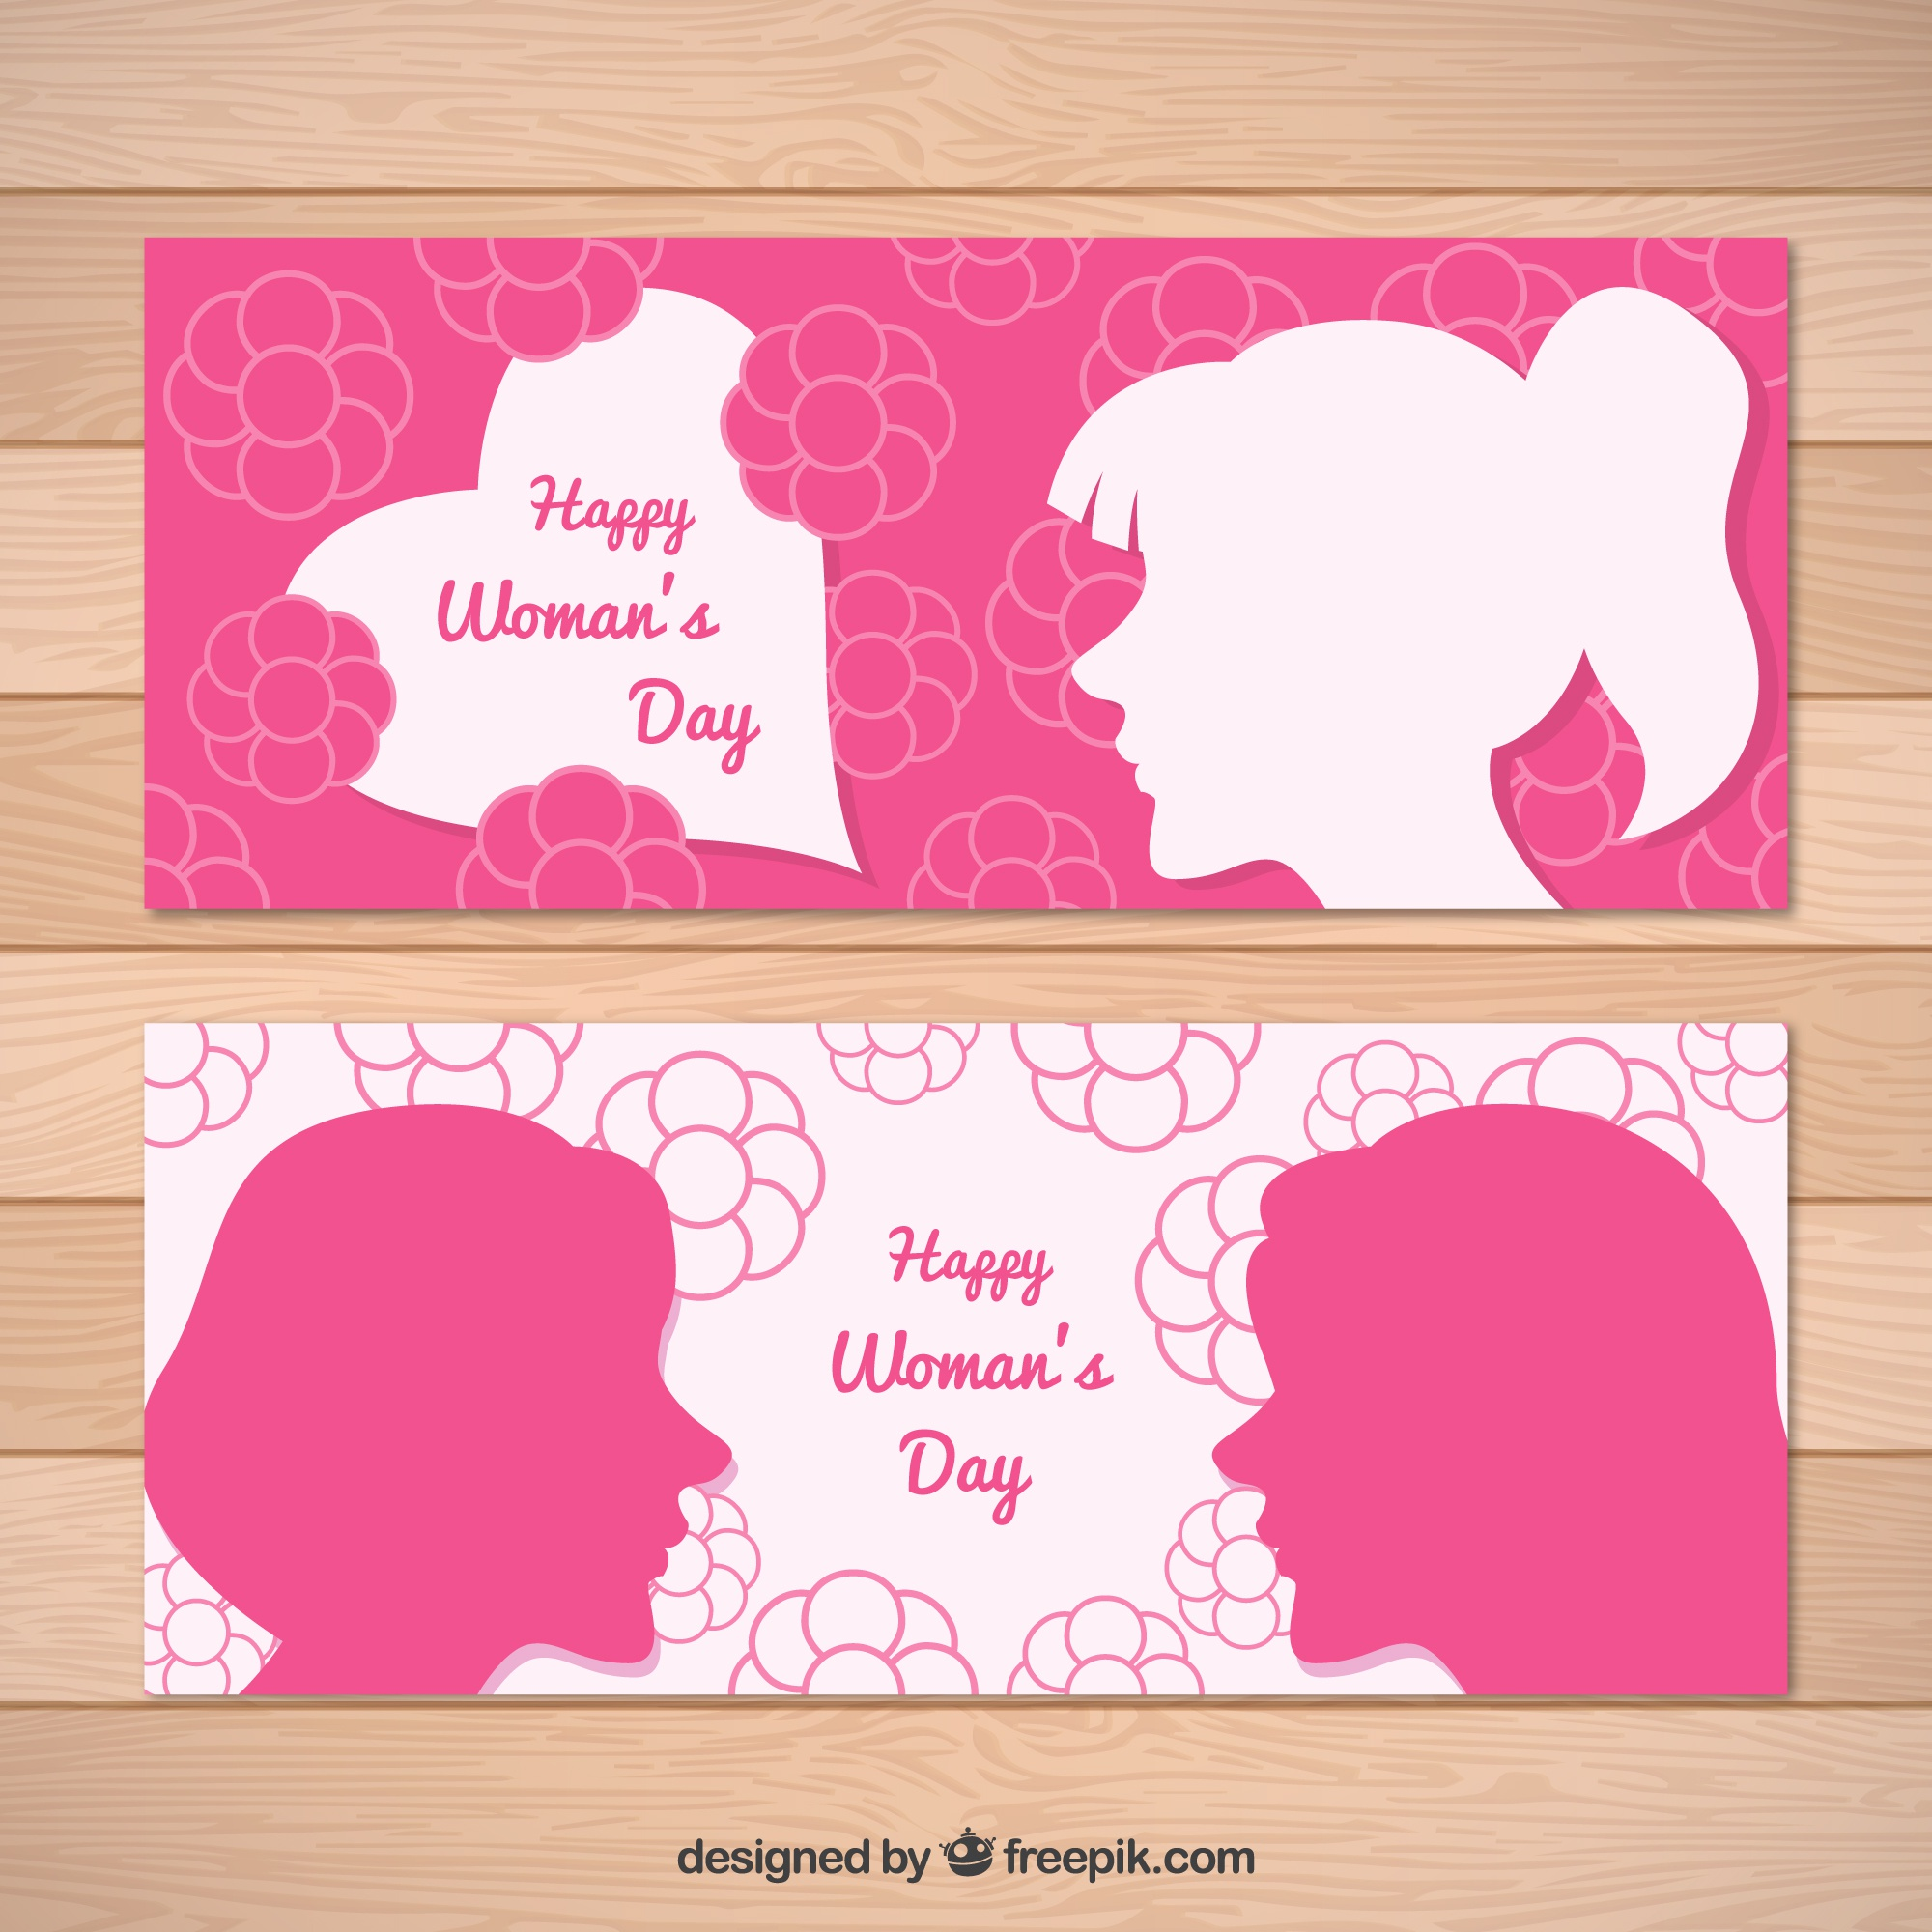 Flat banners with flowers and silhouettes for women's day